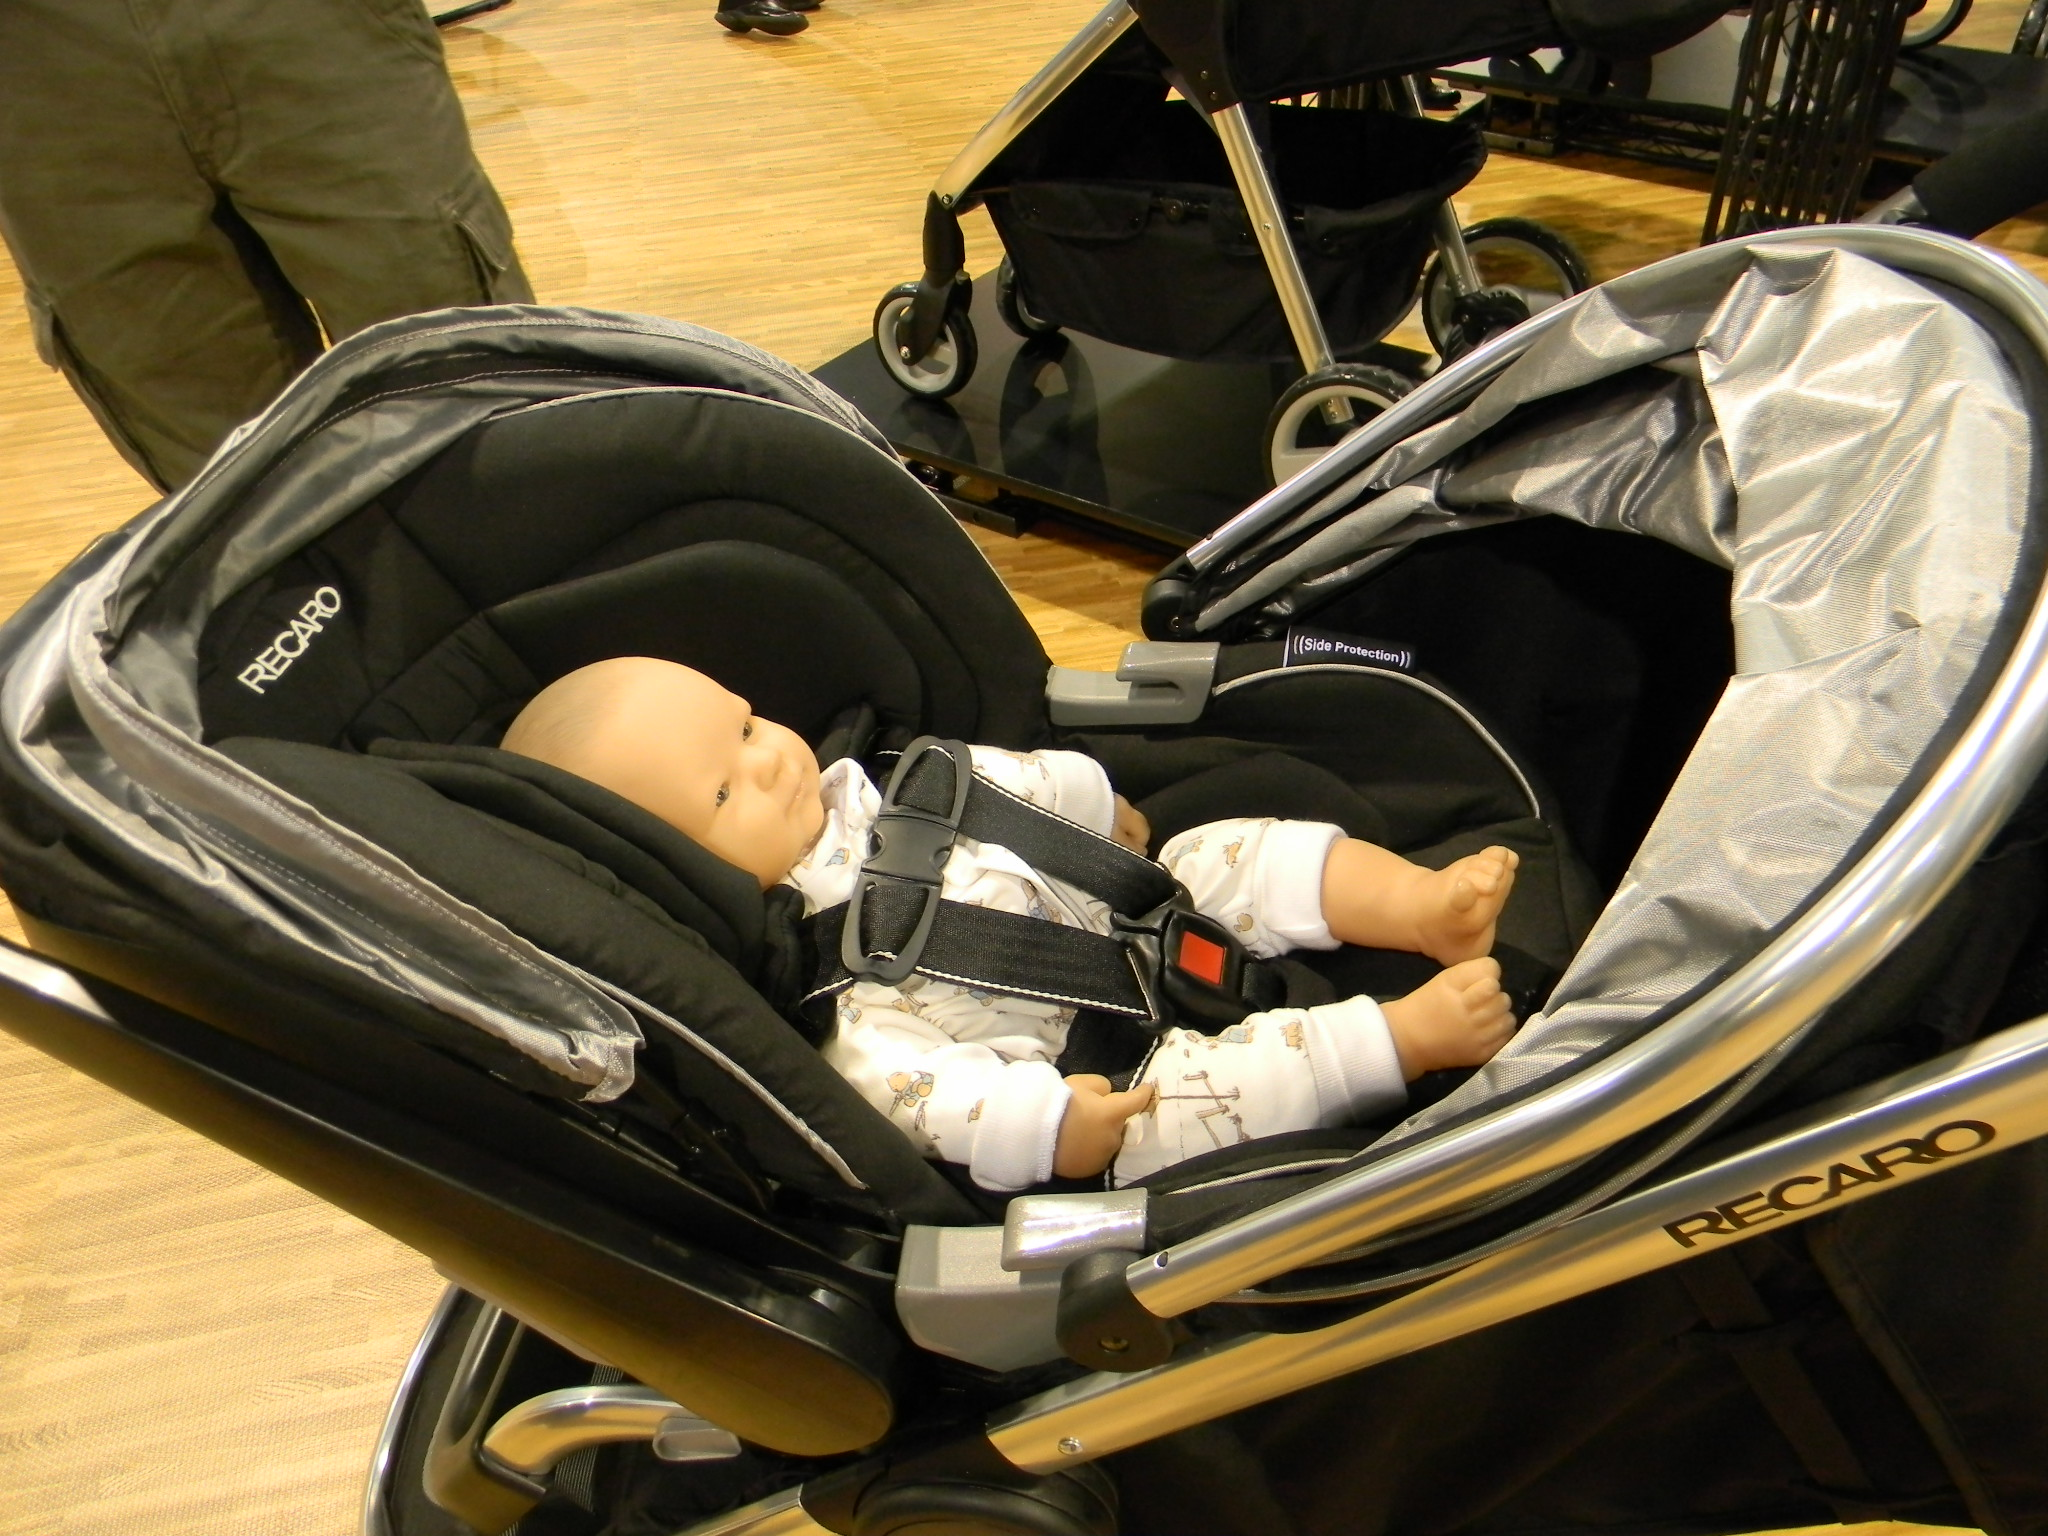 Recaro Booster Car Seat ... : The Most Trusted Source for Car Seat Reviews, Ratings, Deals & News